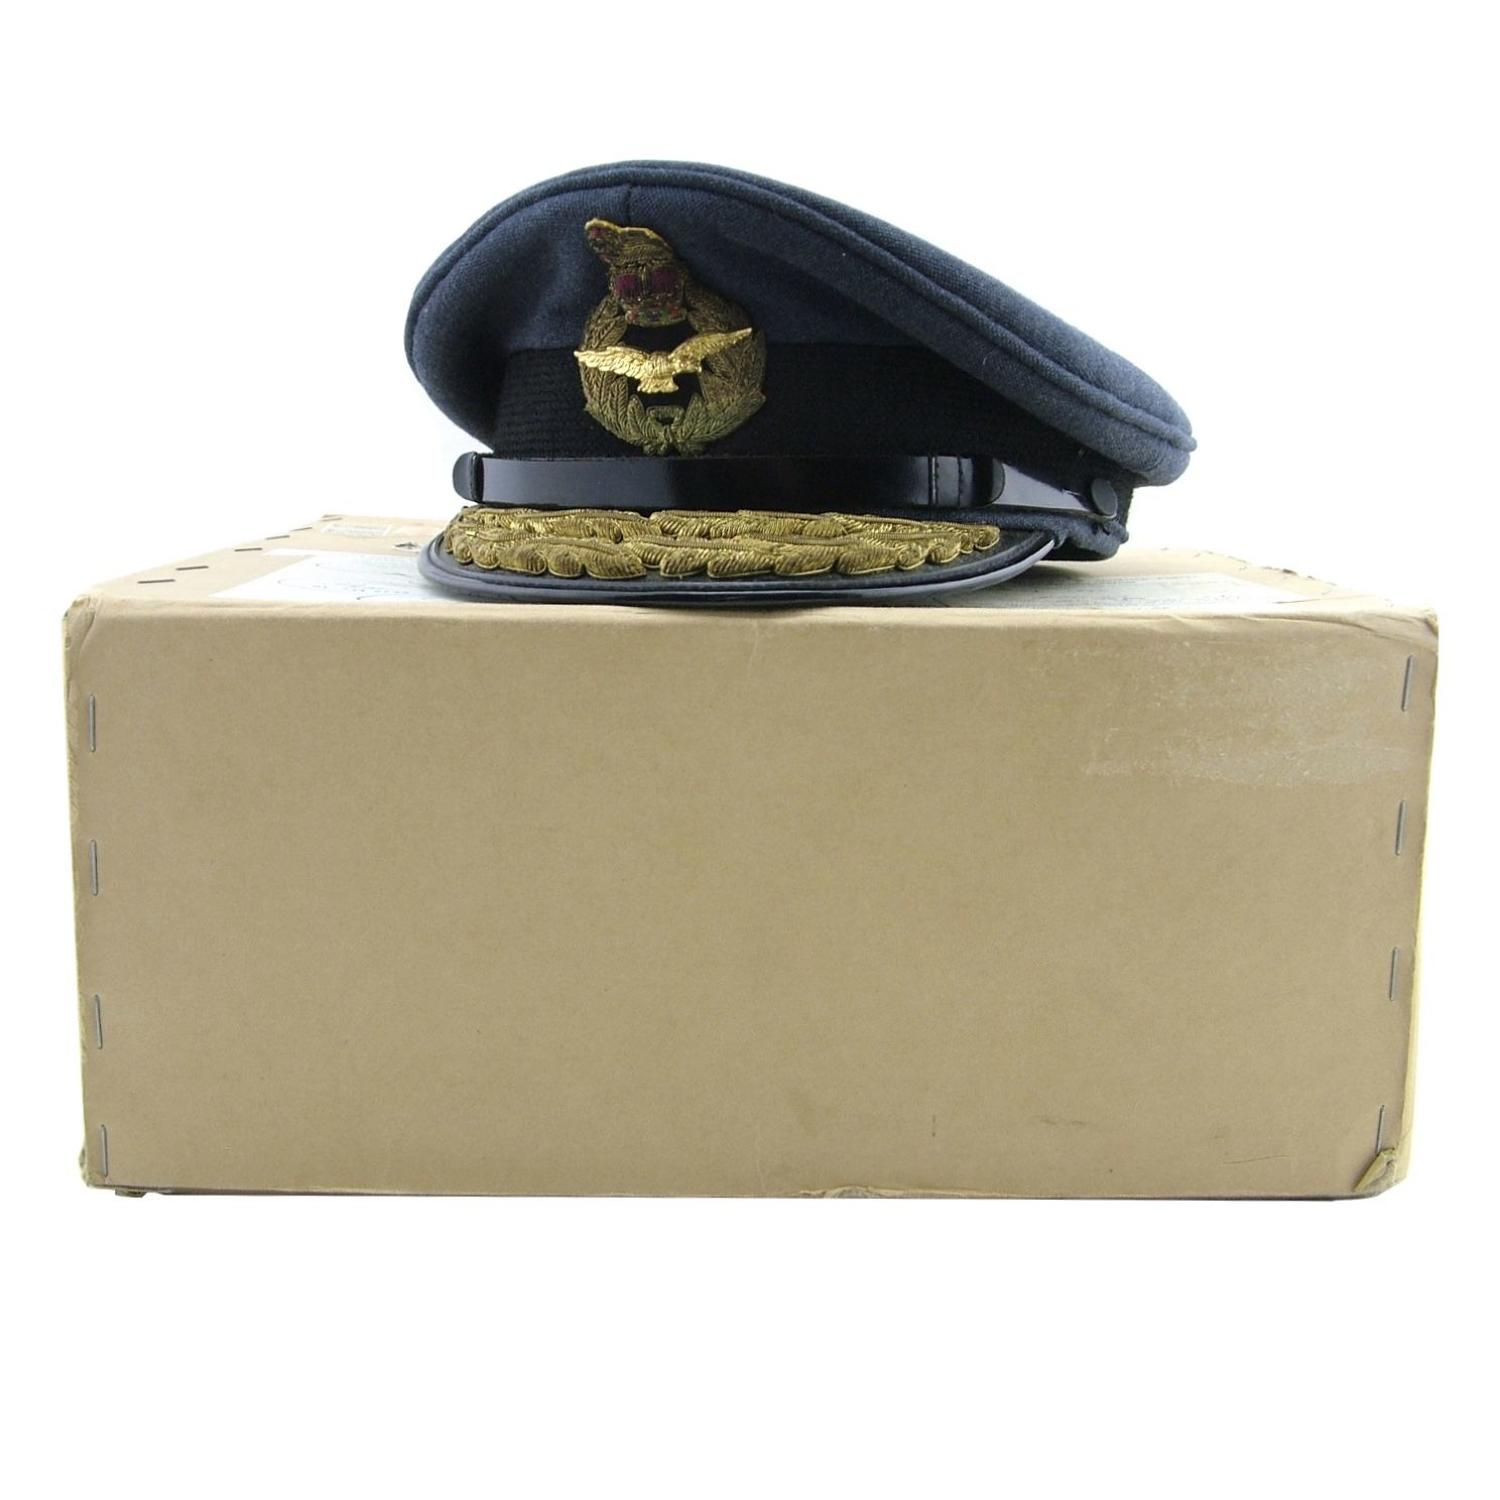 RAF 'Air Rank' service dress cap, boxed - history